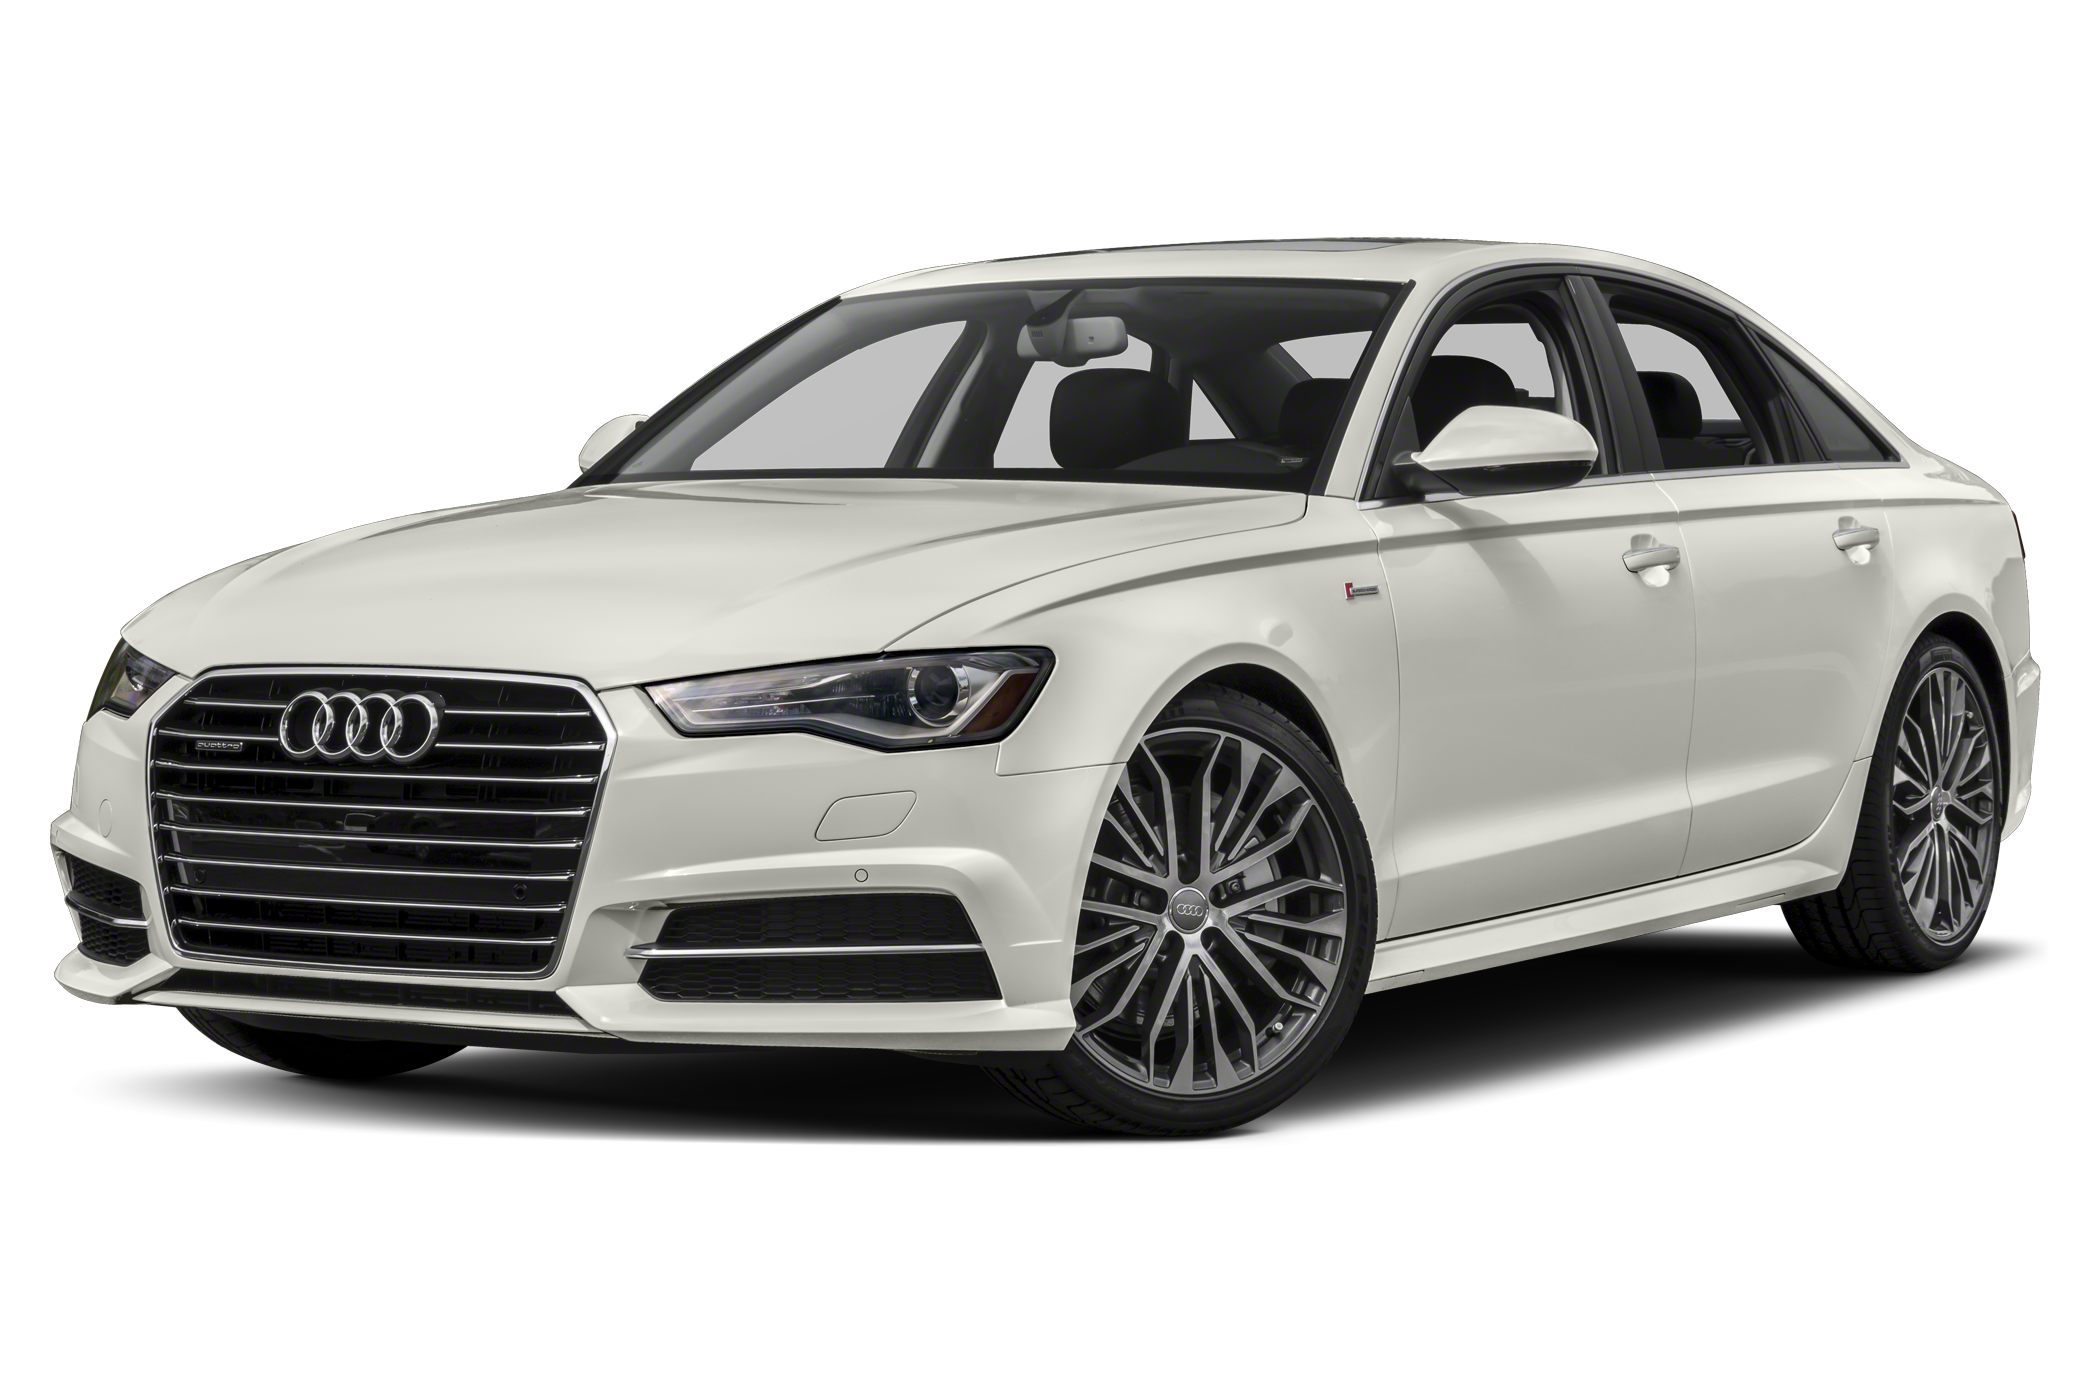 2016 audi a6 first drive w video autoblog. Black Bedroom Furniture Sets. Home Design Ideas